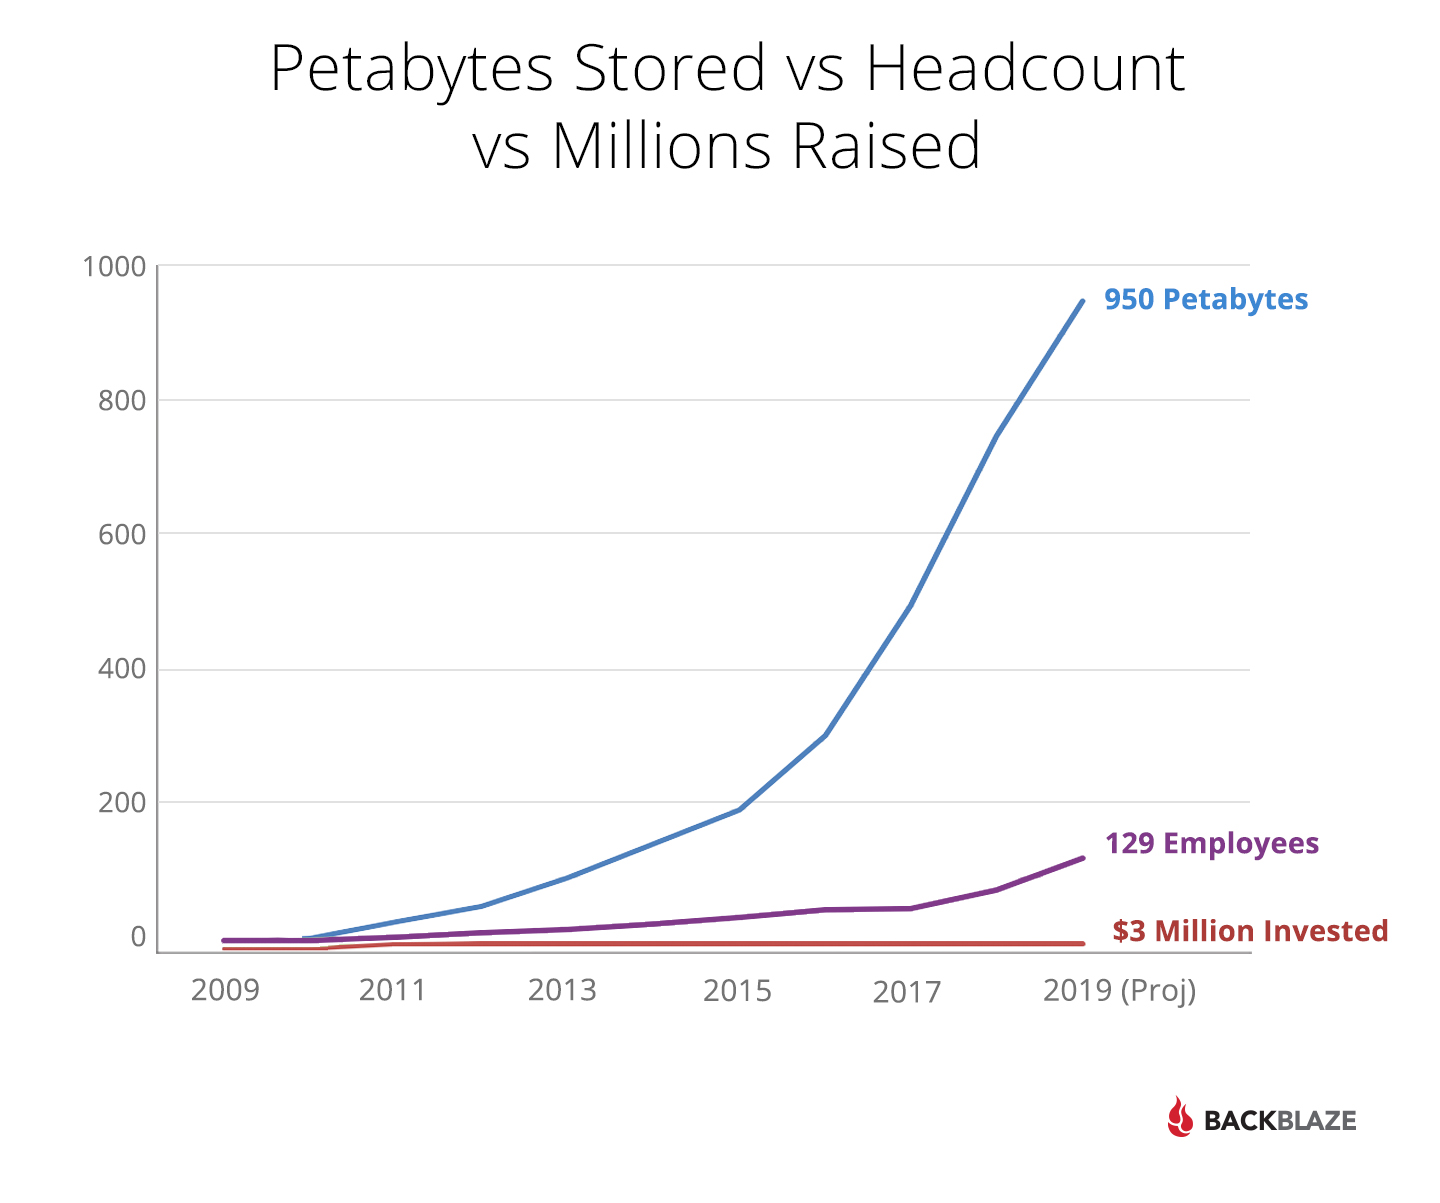 Petabytes Stored vs Headcount vs Millions Raised